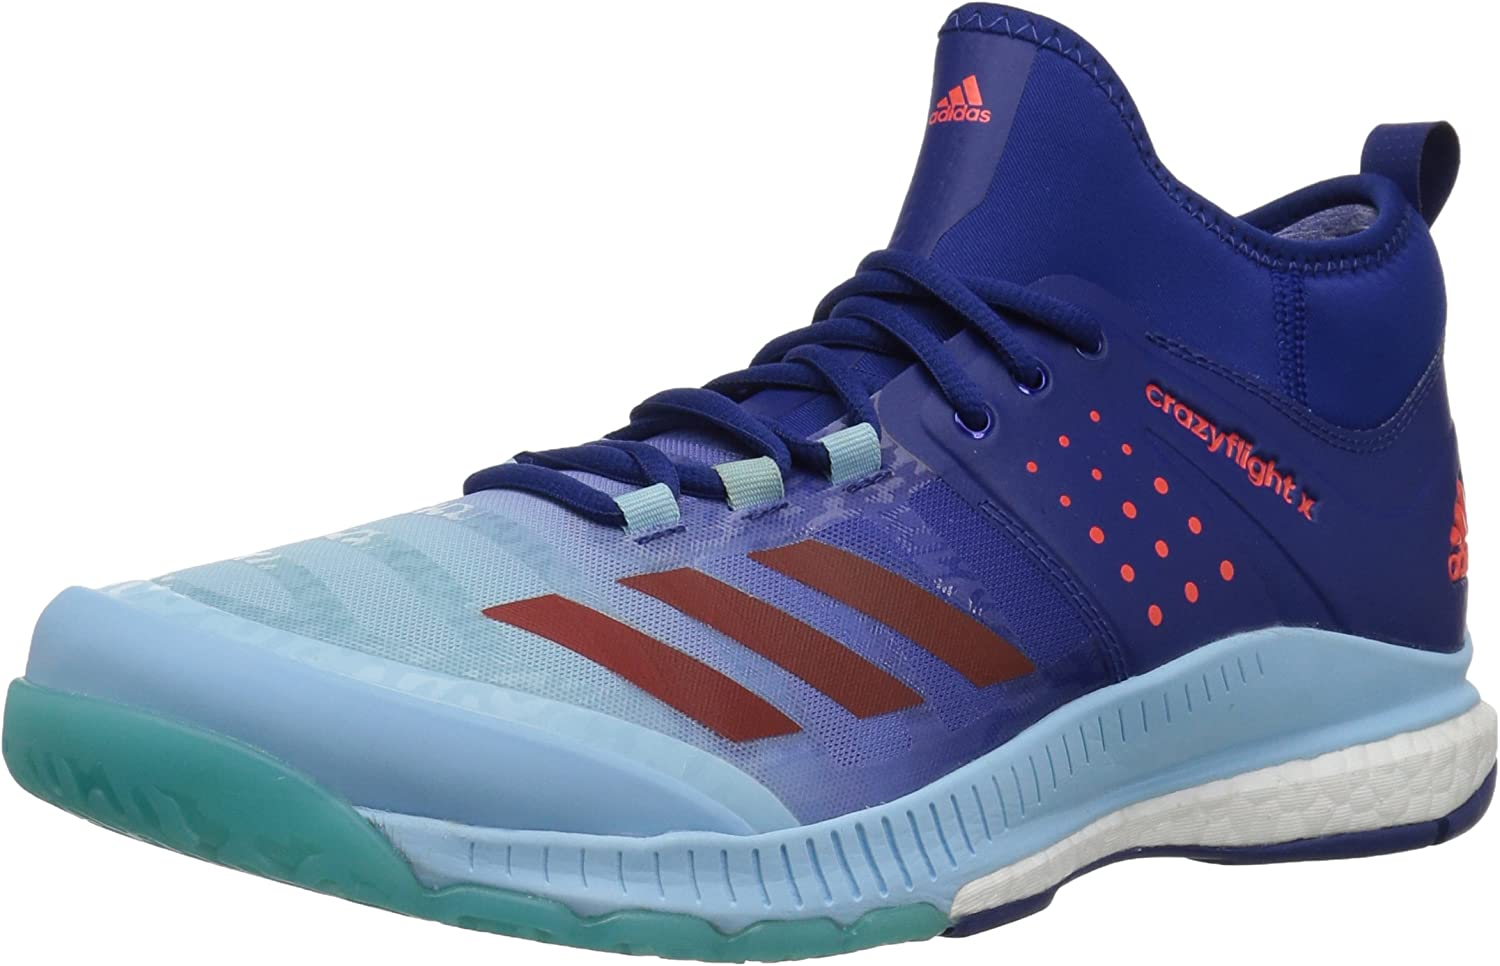 Adidas Womens Crazyflight X Mid Volleyball shoes -